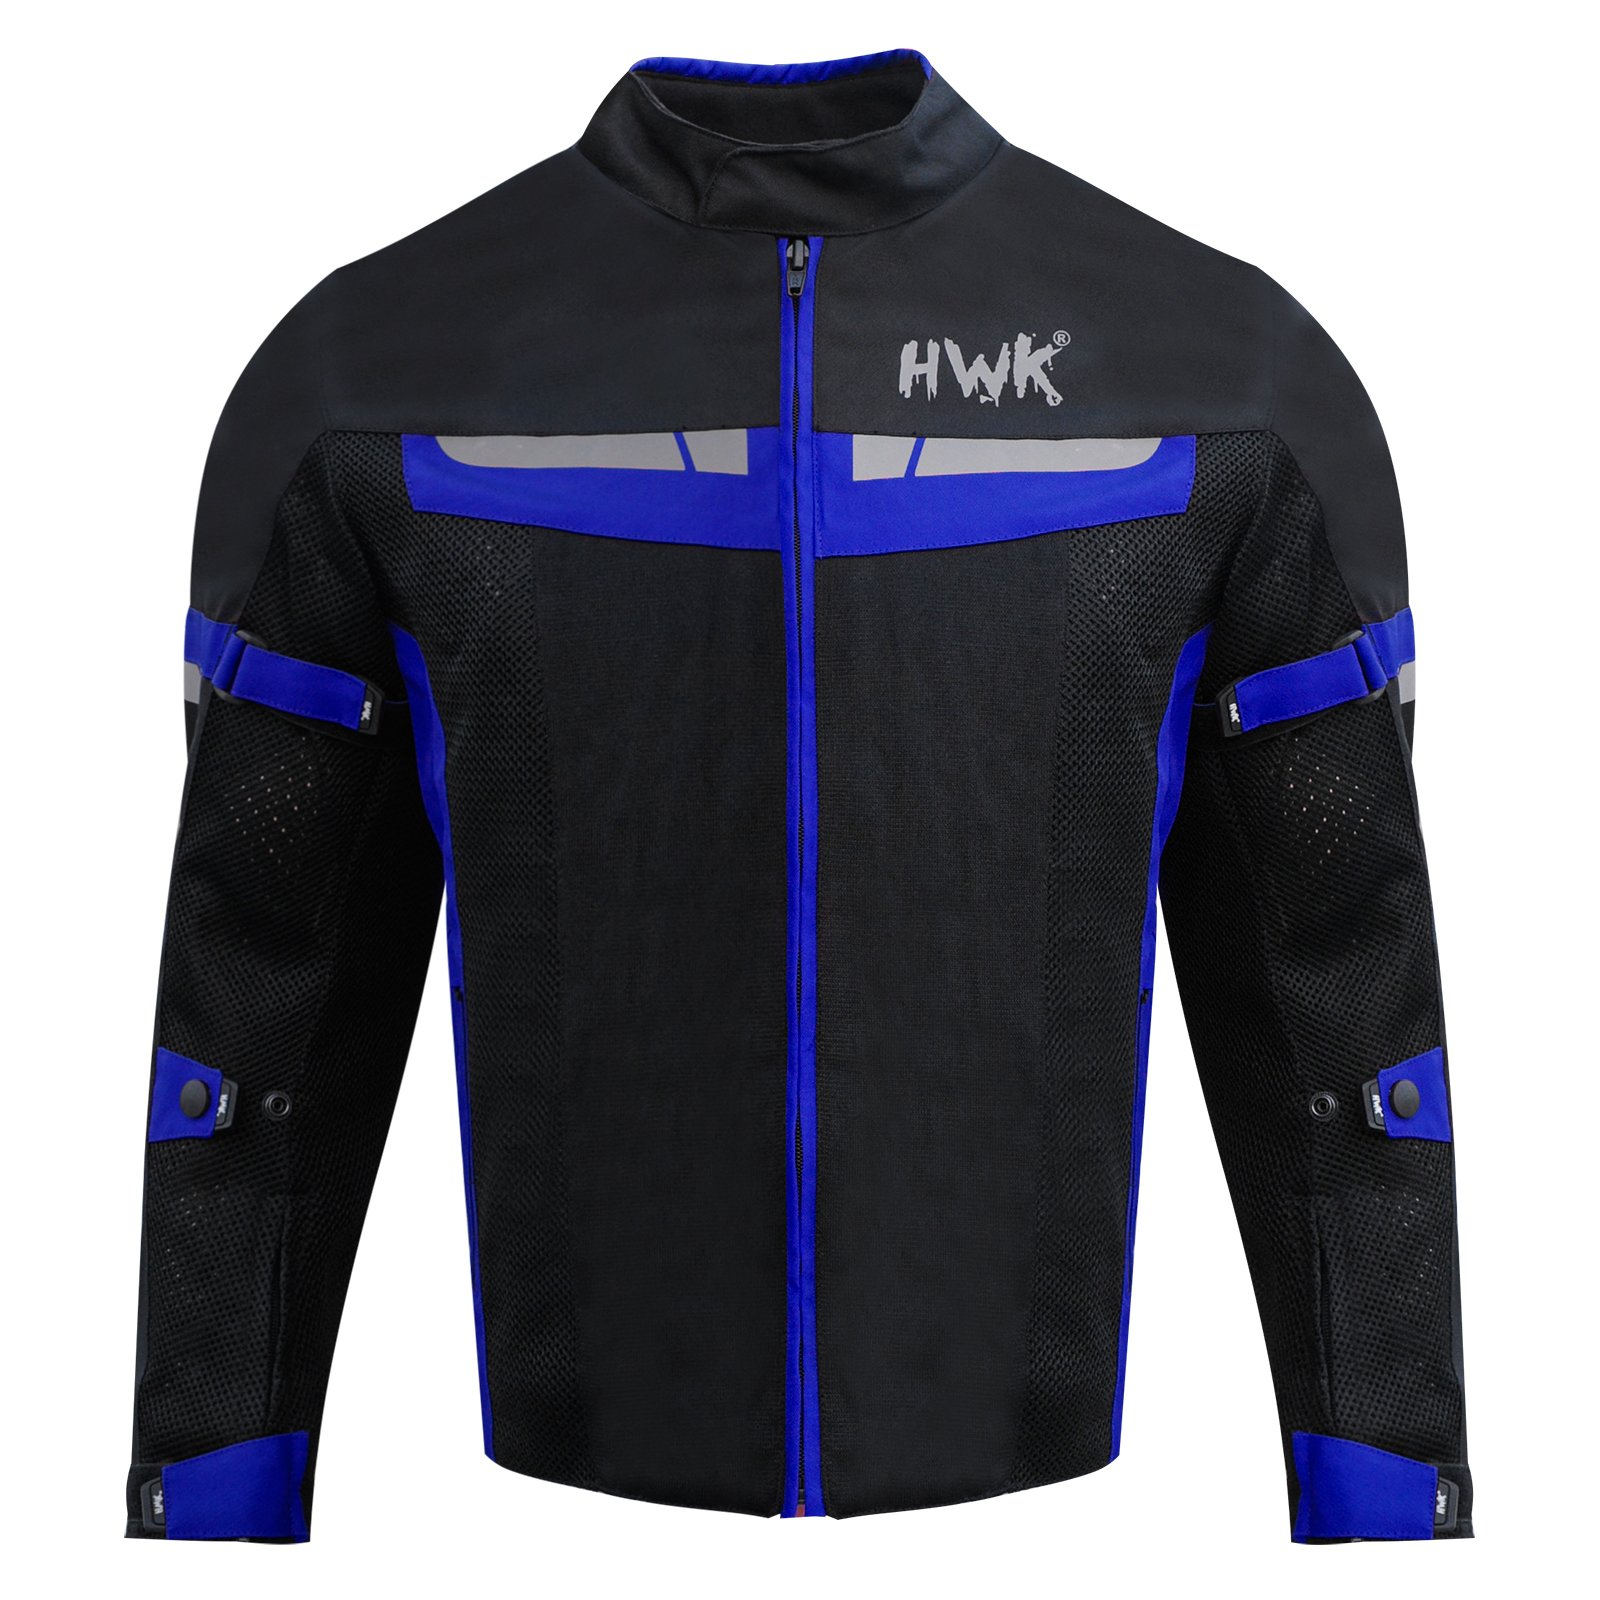 HWK Mesh Motorcycle Jacket Riding Air Motorbike Jacket Biker CE Armored Breathable (Small, Blue) by HHR (Image #1)